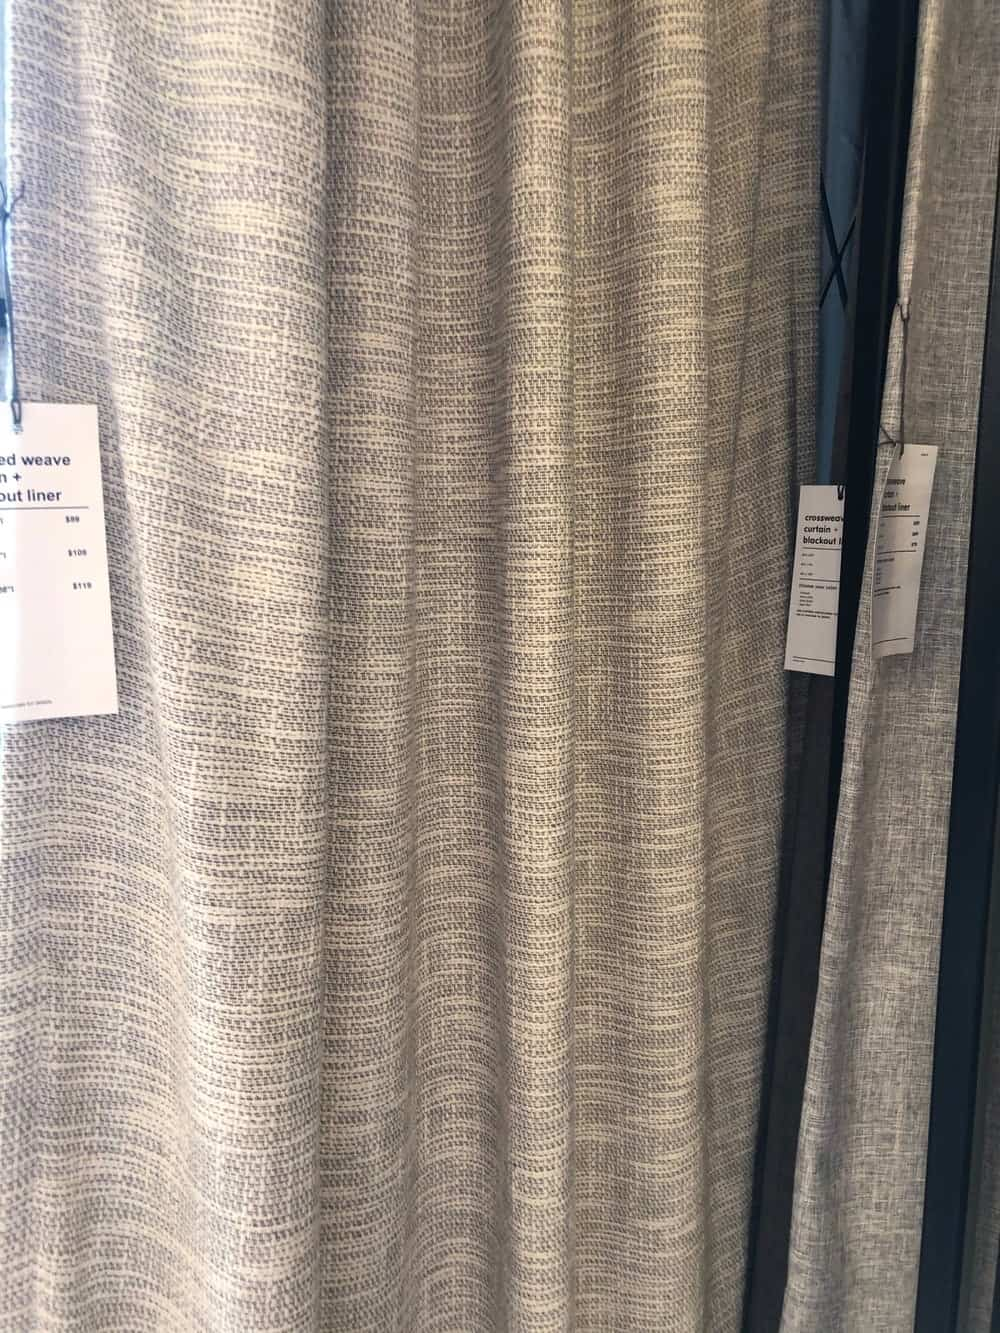 Textured Weave with Blackout liner by west elm